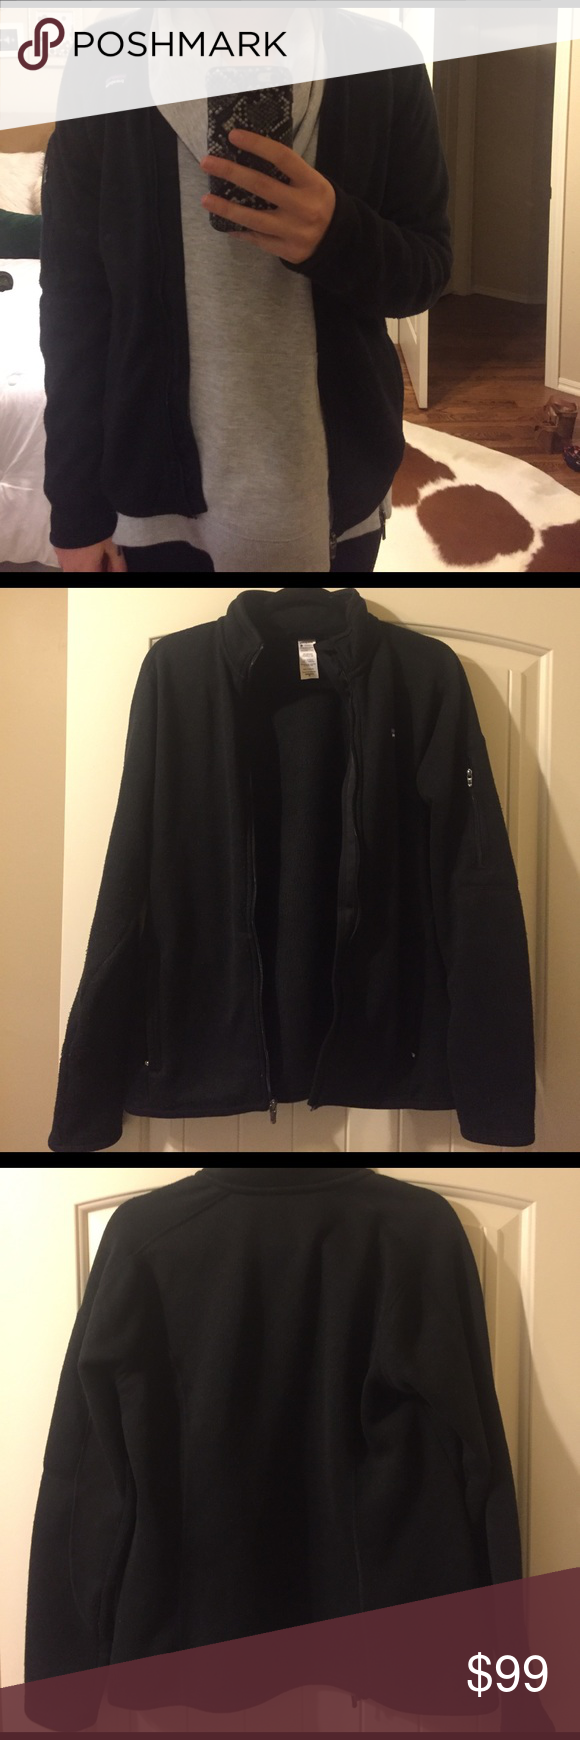 Patagonia Better Sweater Fleece Jacket Patagonia Better Sweater Fleece Jacket. In good condition with minimal wear! Patagonia Jackets & Coats